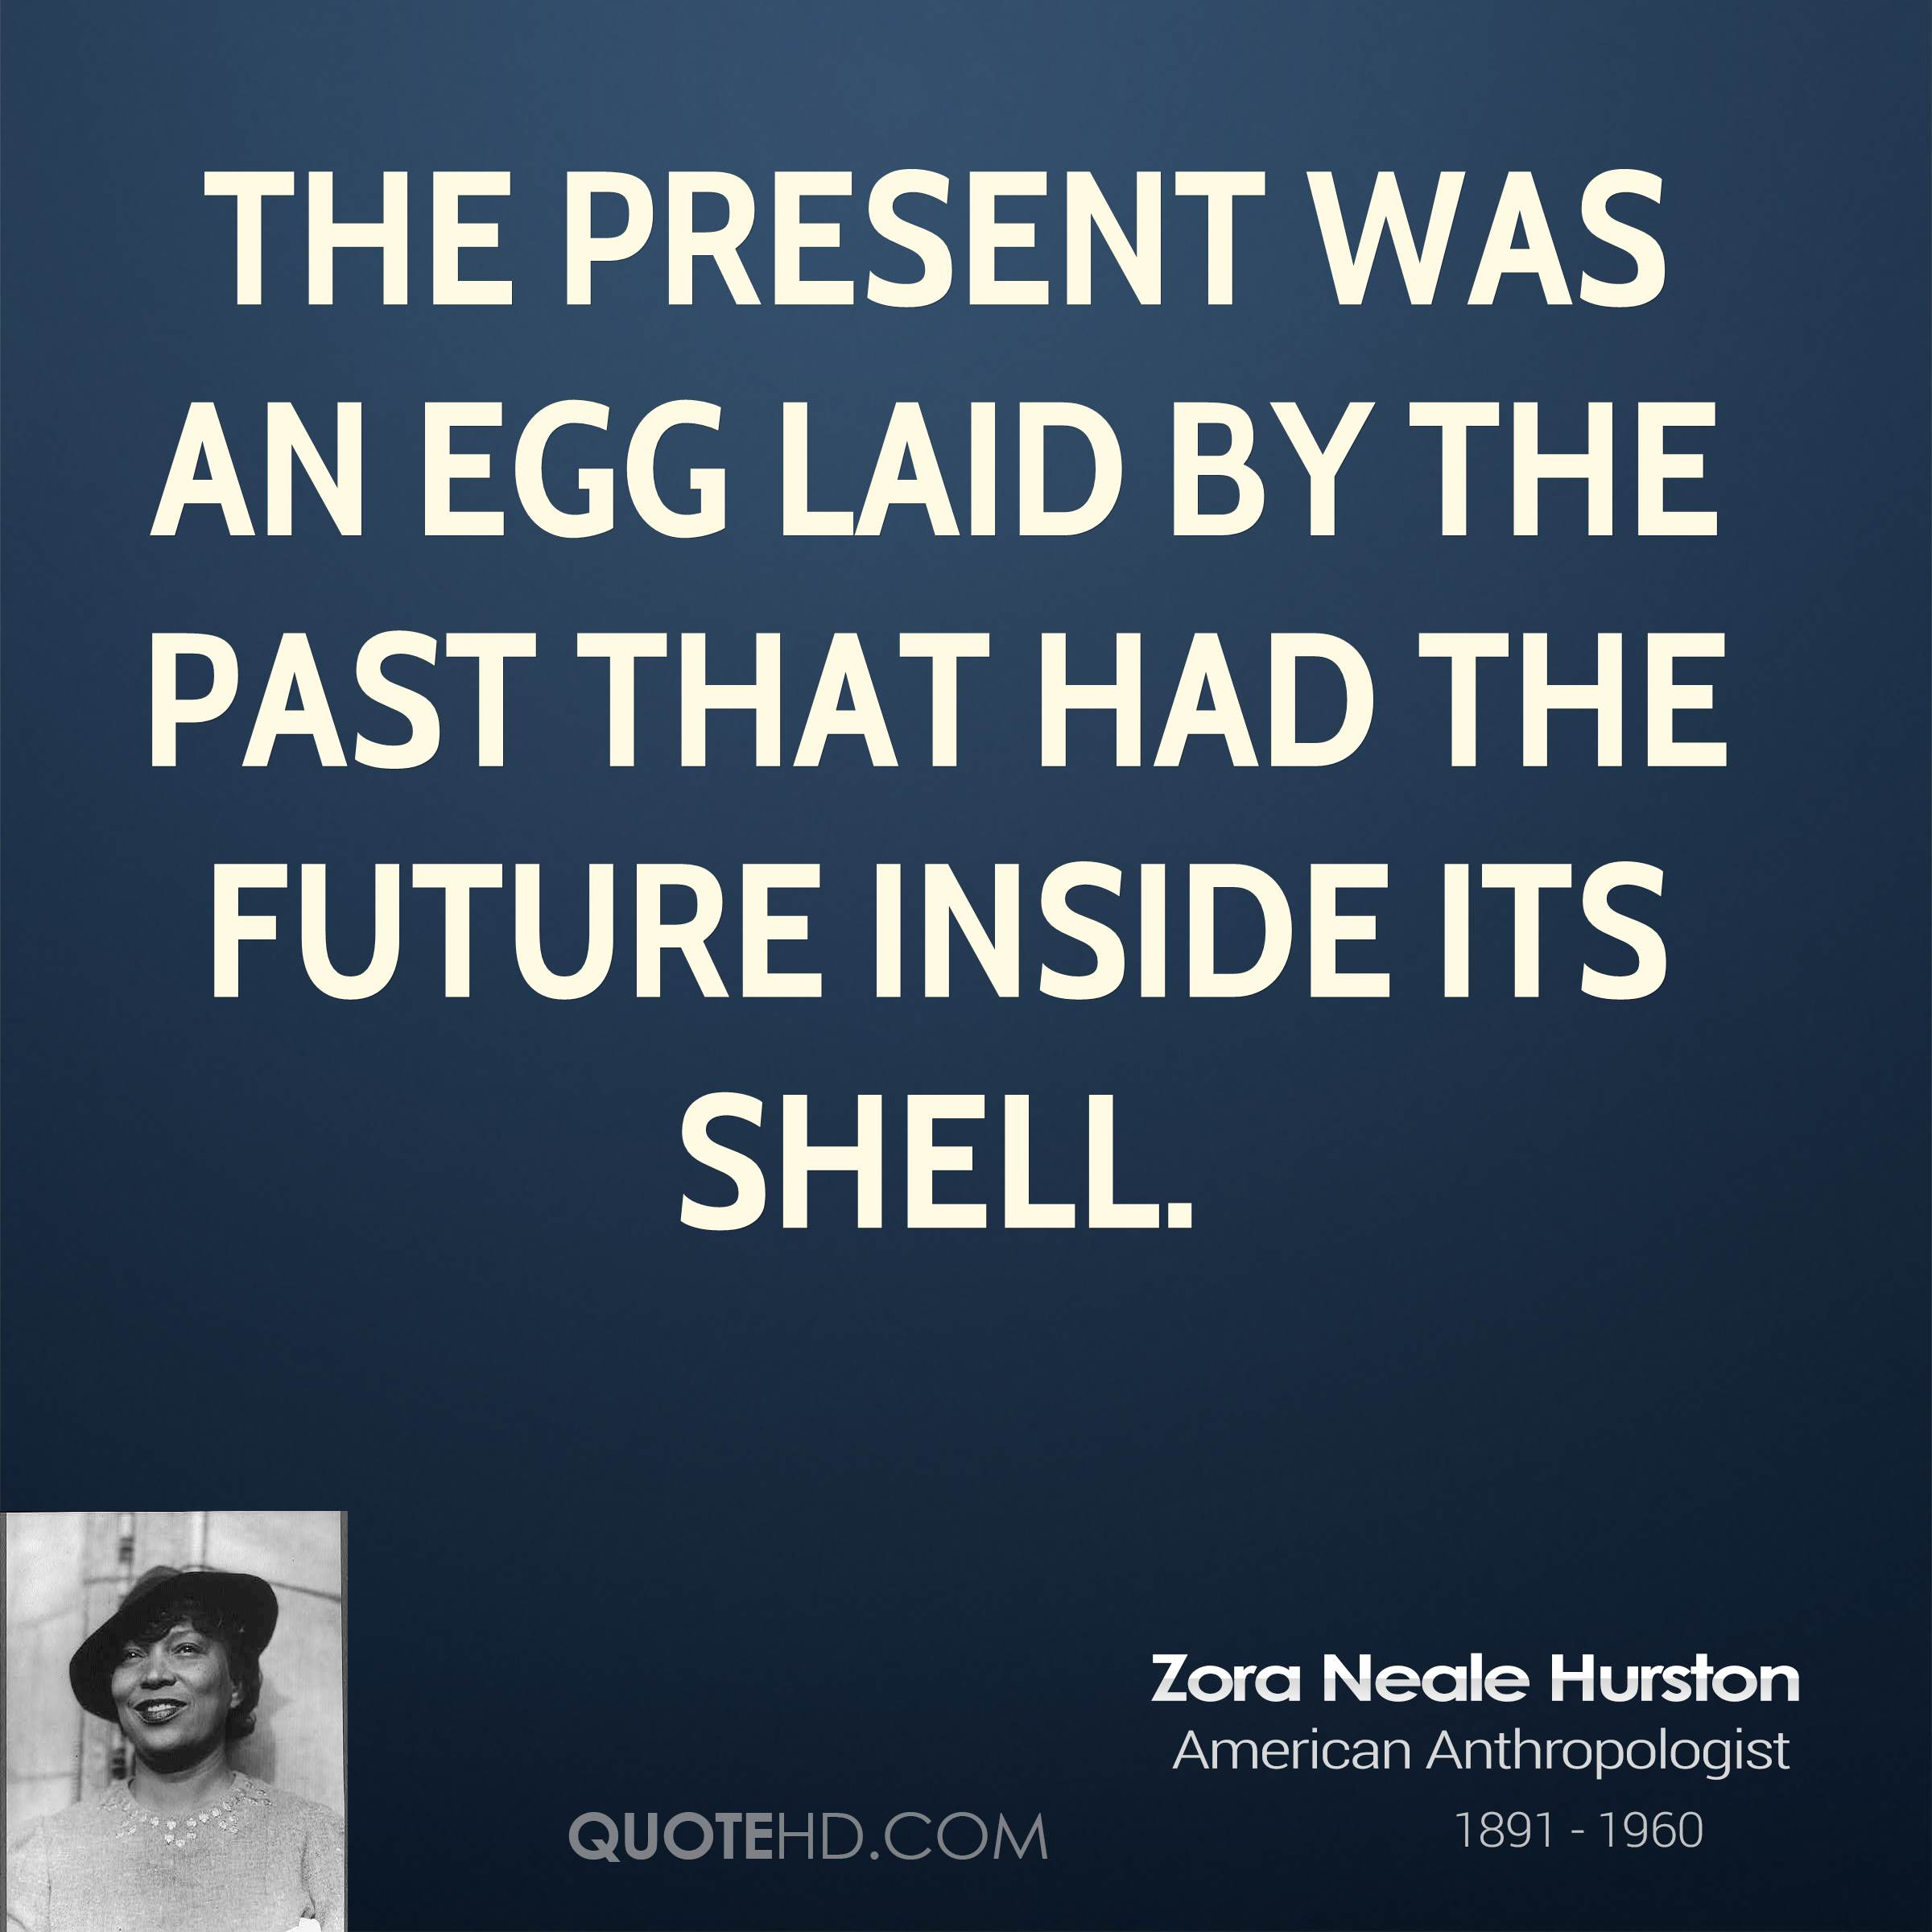 The present was an egg laid by the past that had the future inside its shell.